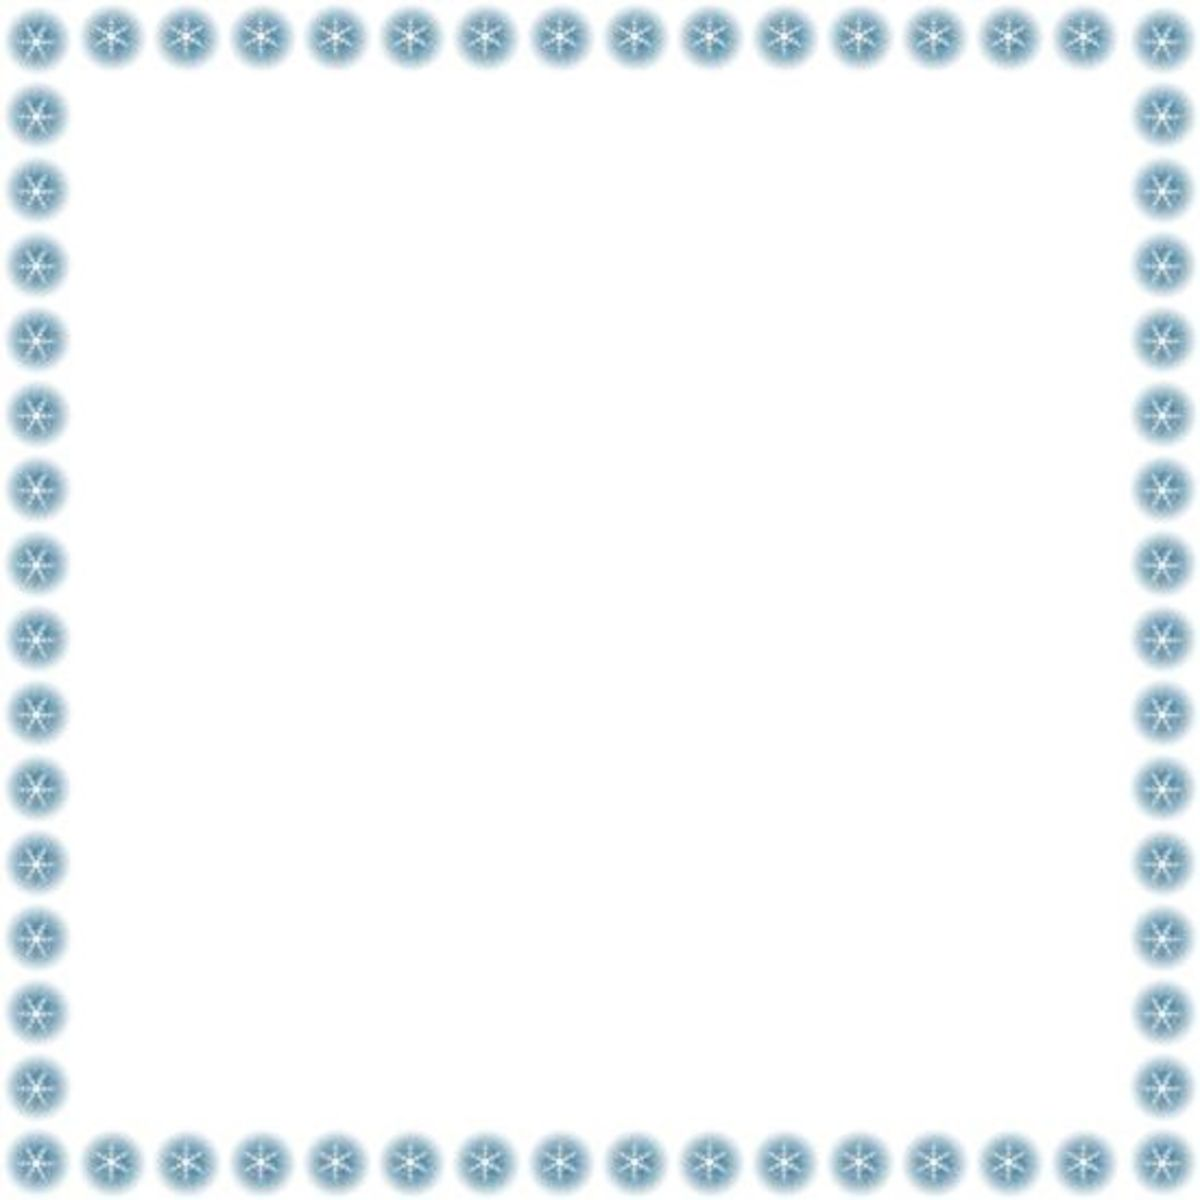 Clip Art Borders Related Keywords & Suggestions - Winter Clip Art ...